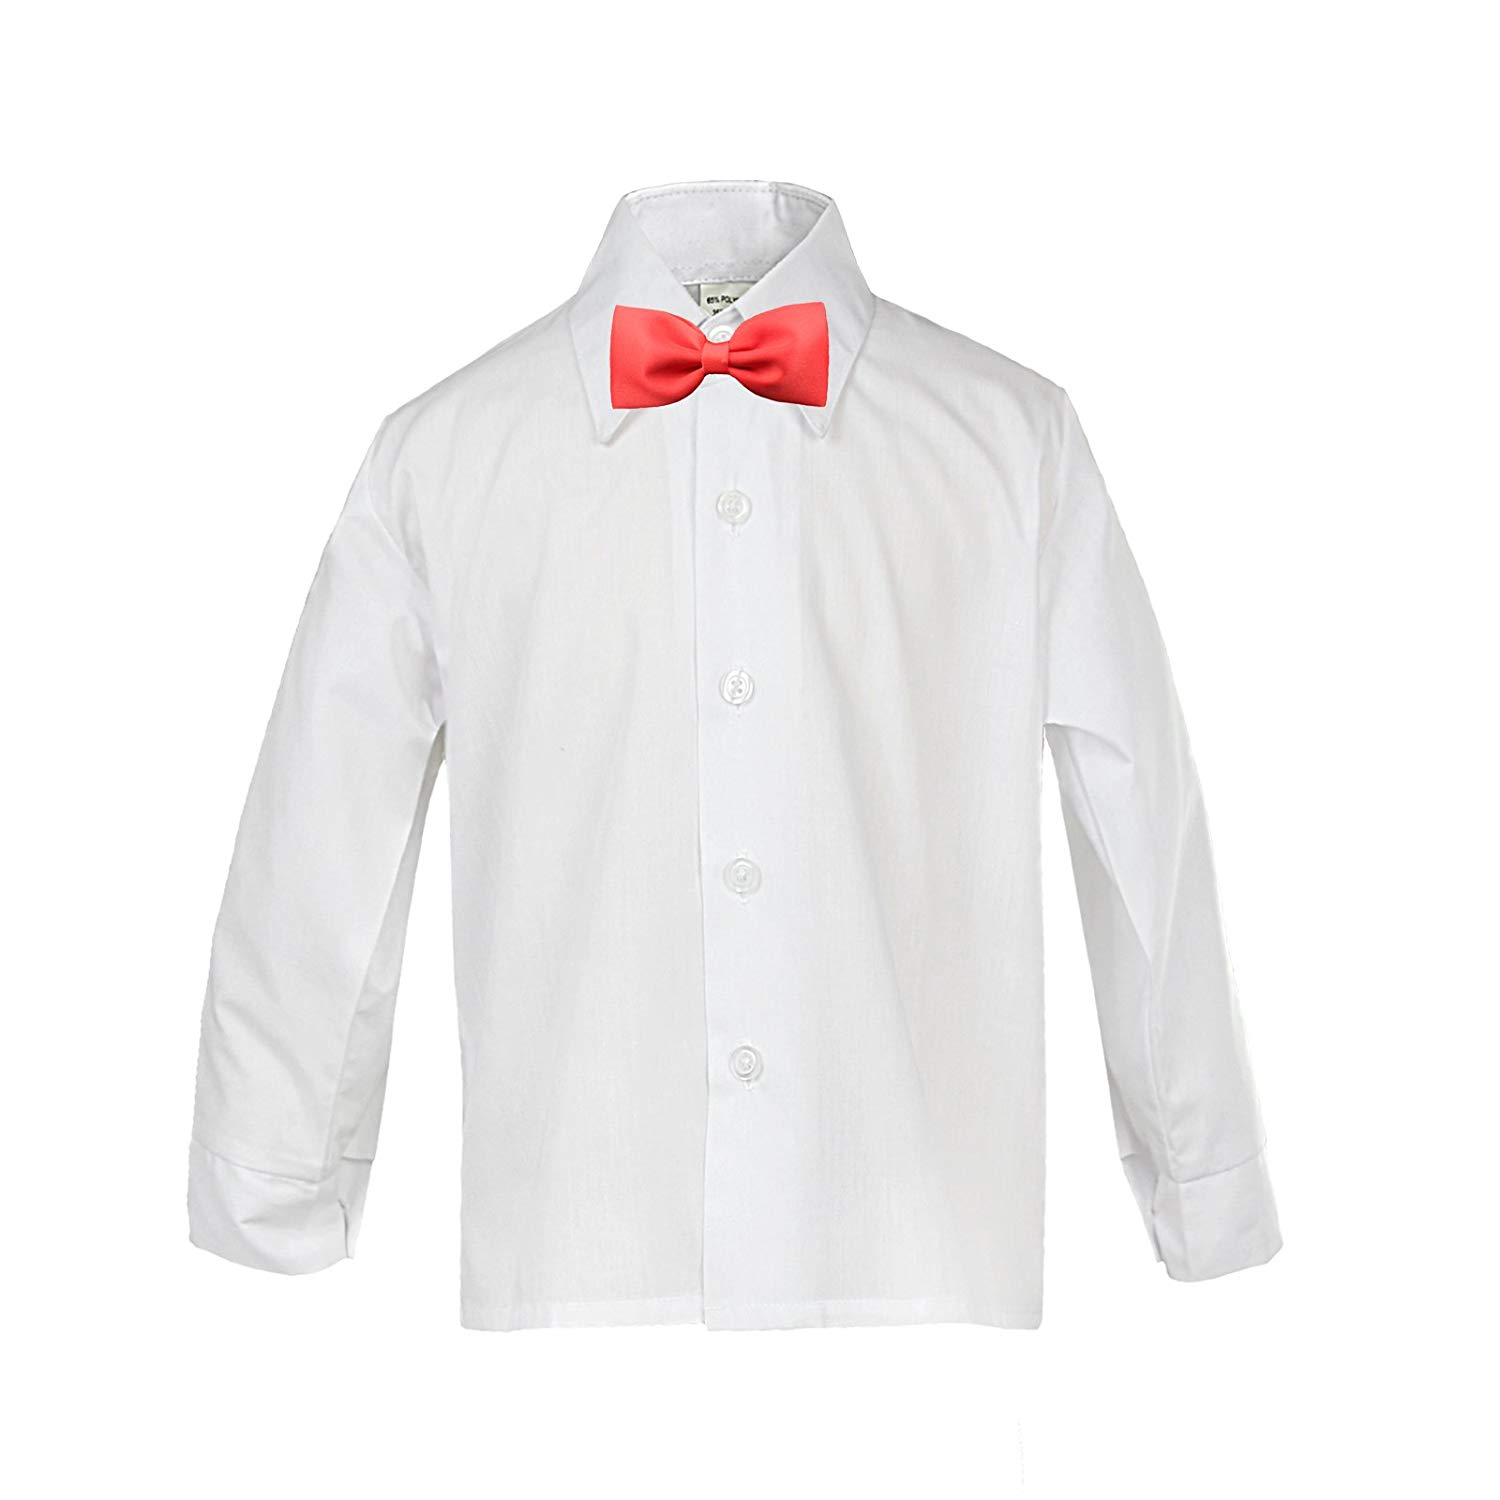 e75c0c6479d3 Get Quotations · Baby Boy Kid Formal Tuxedo Suit Button White Dress Shirt  Color Red Bow tie Sm-